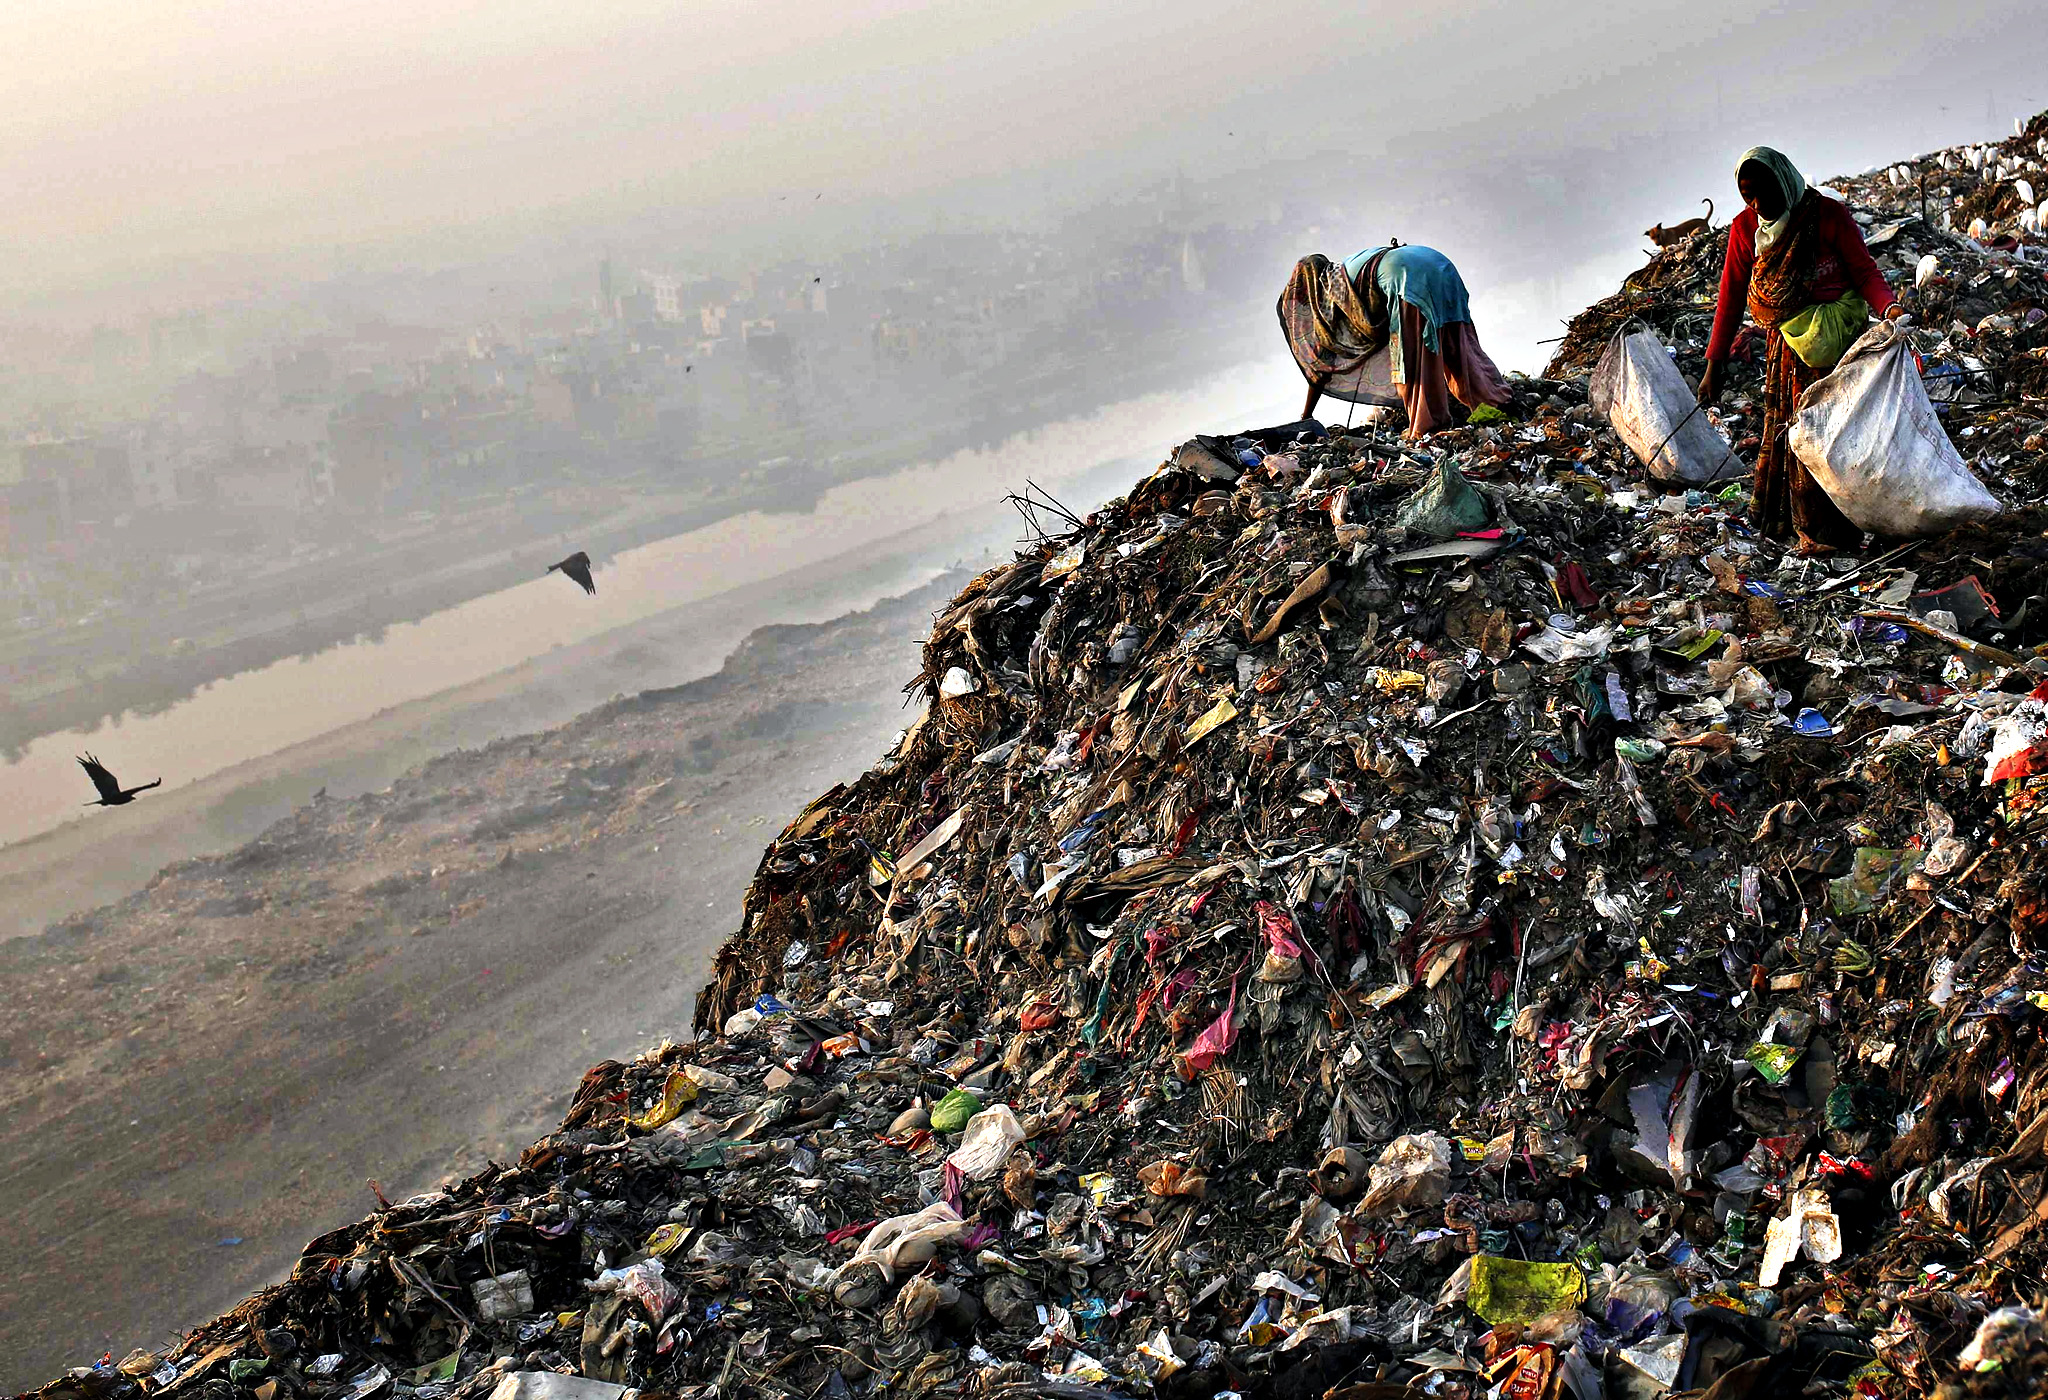 Rag pickers collect recyclable material at a garbage dump in New Delhi...Rag pickers collect recyclable material at a garbage dump in New Delhi November 19, 2014.